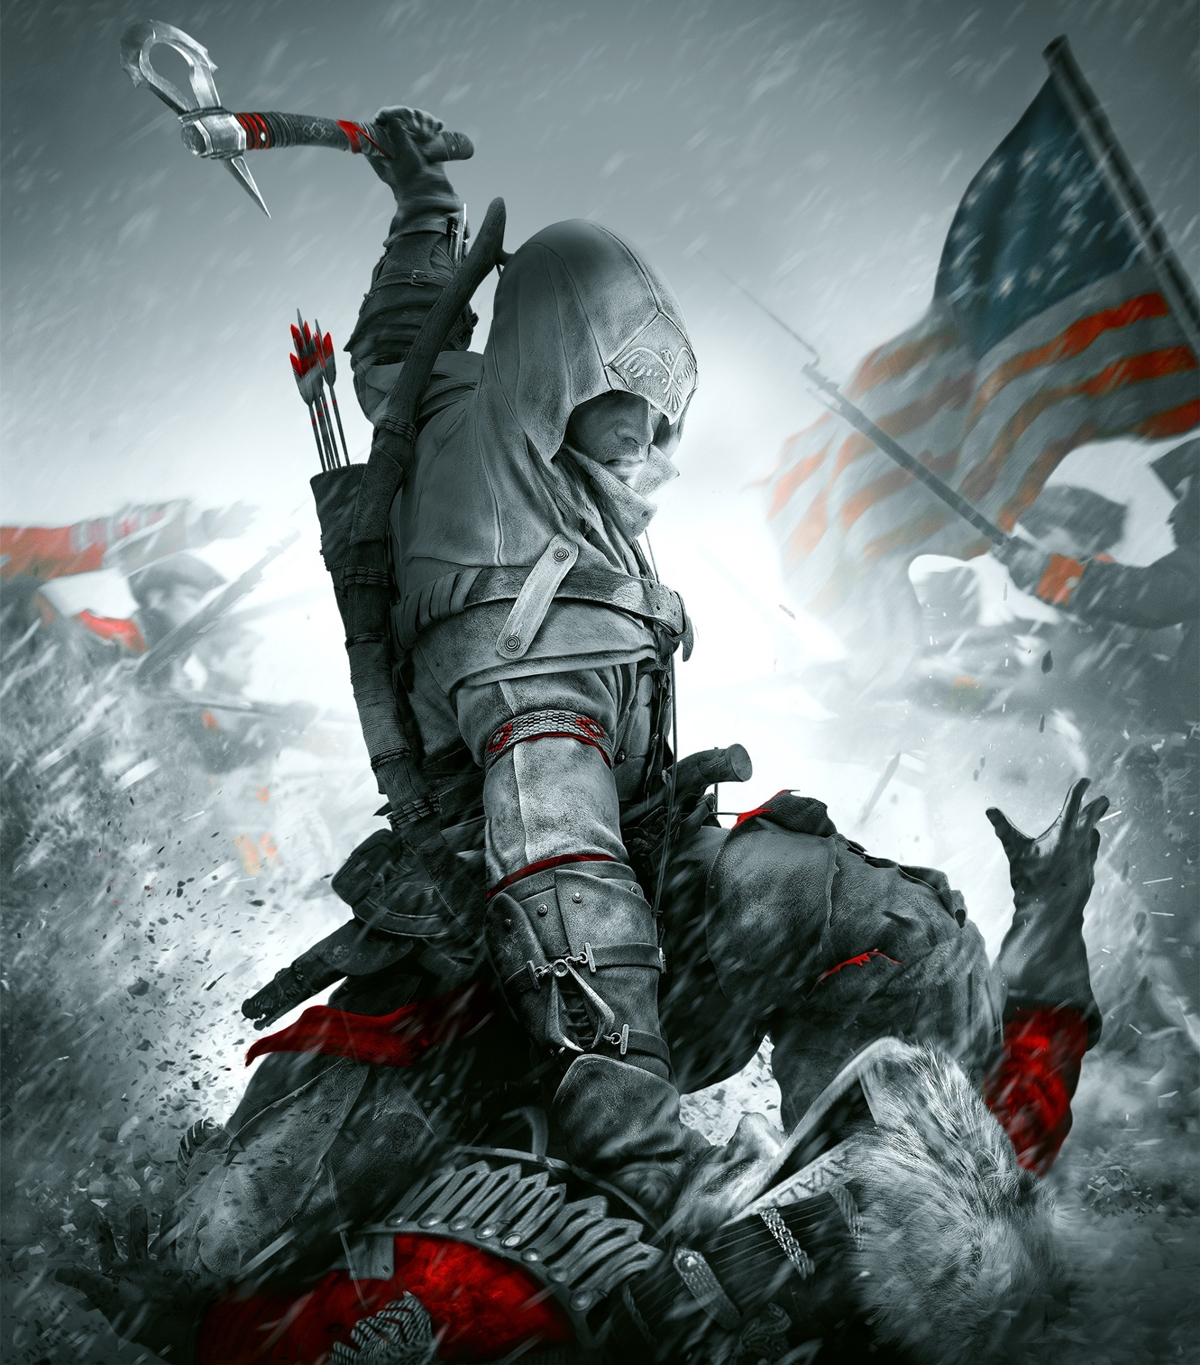 AC3R_KA_Close2018FINAL2NoLogo_PR_190206_5pm_CET_1549380997.jpg